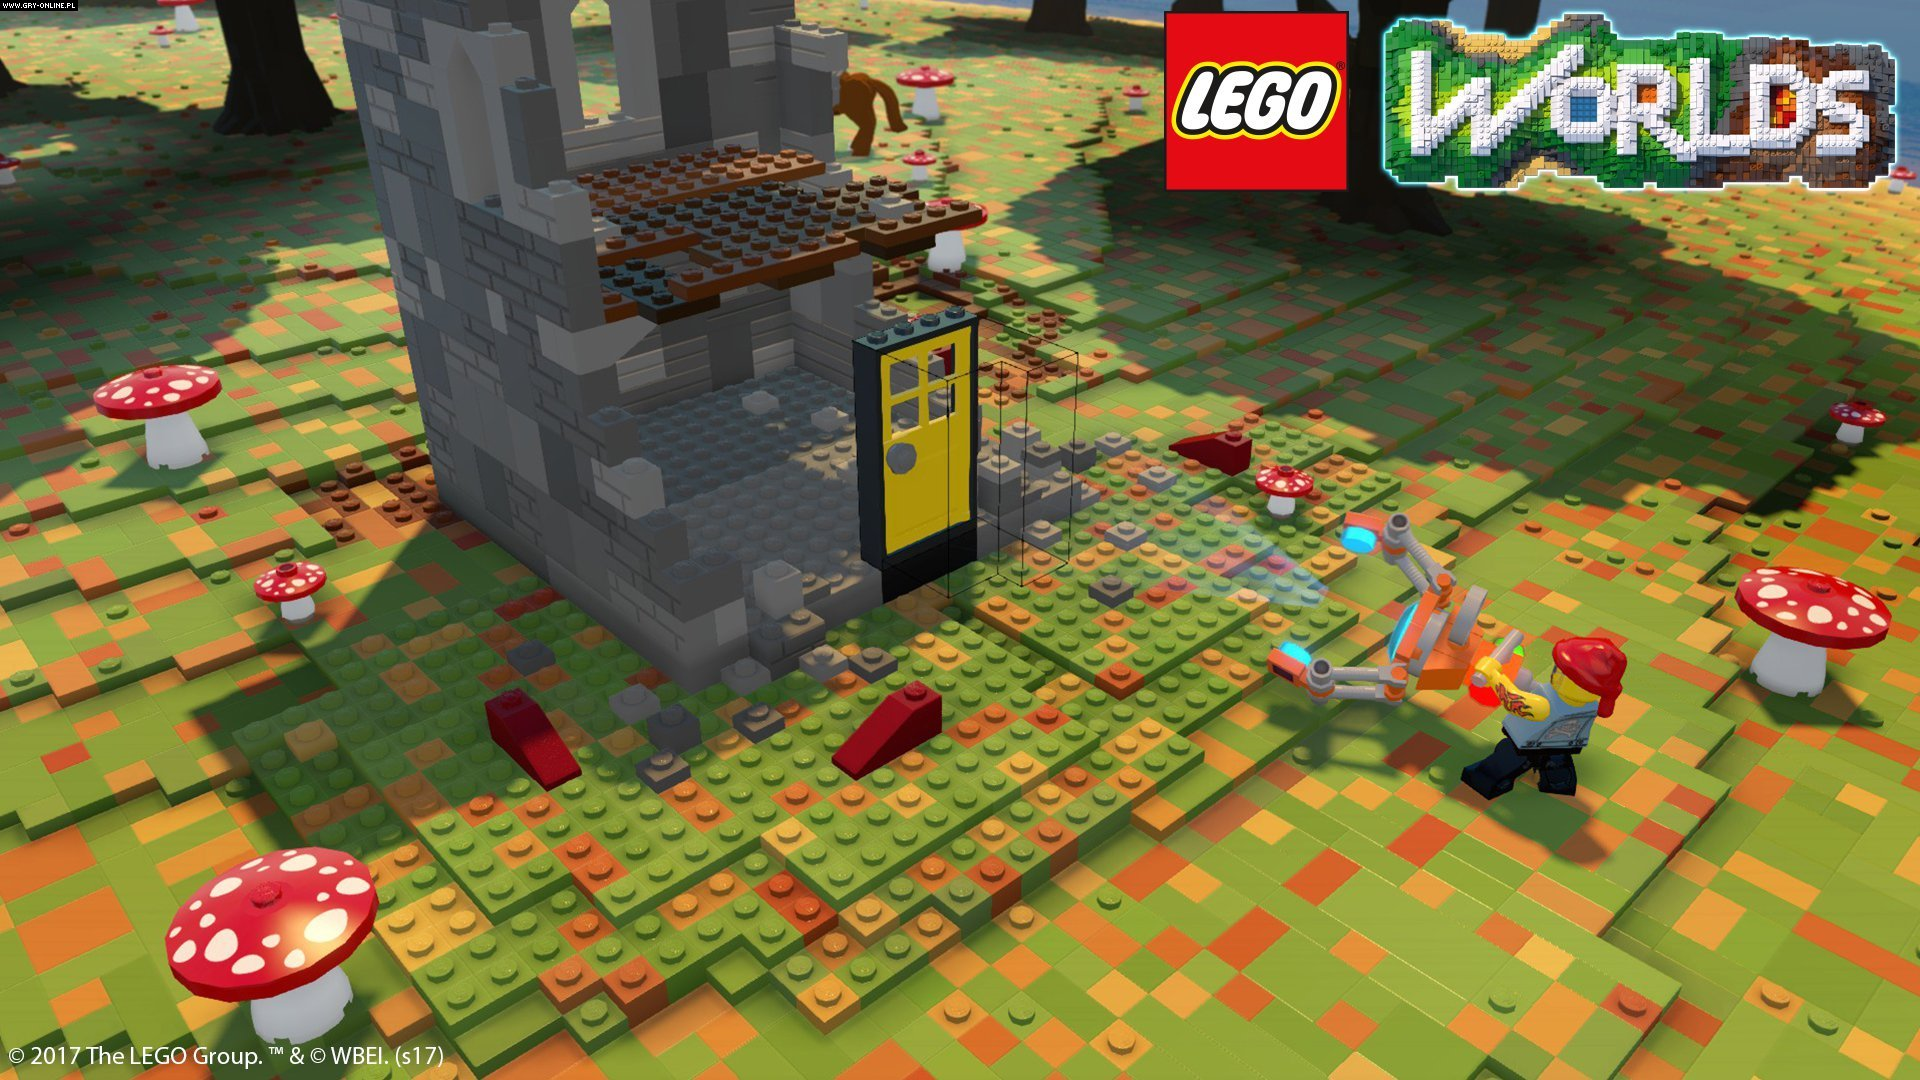 LEGO Worlds PC, PS4, XONE Games Image 14/26, Traveller's Tales, Warner Bros. Interactive Entertainment